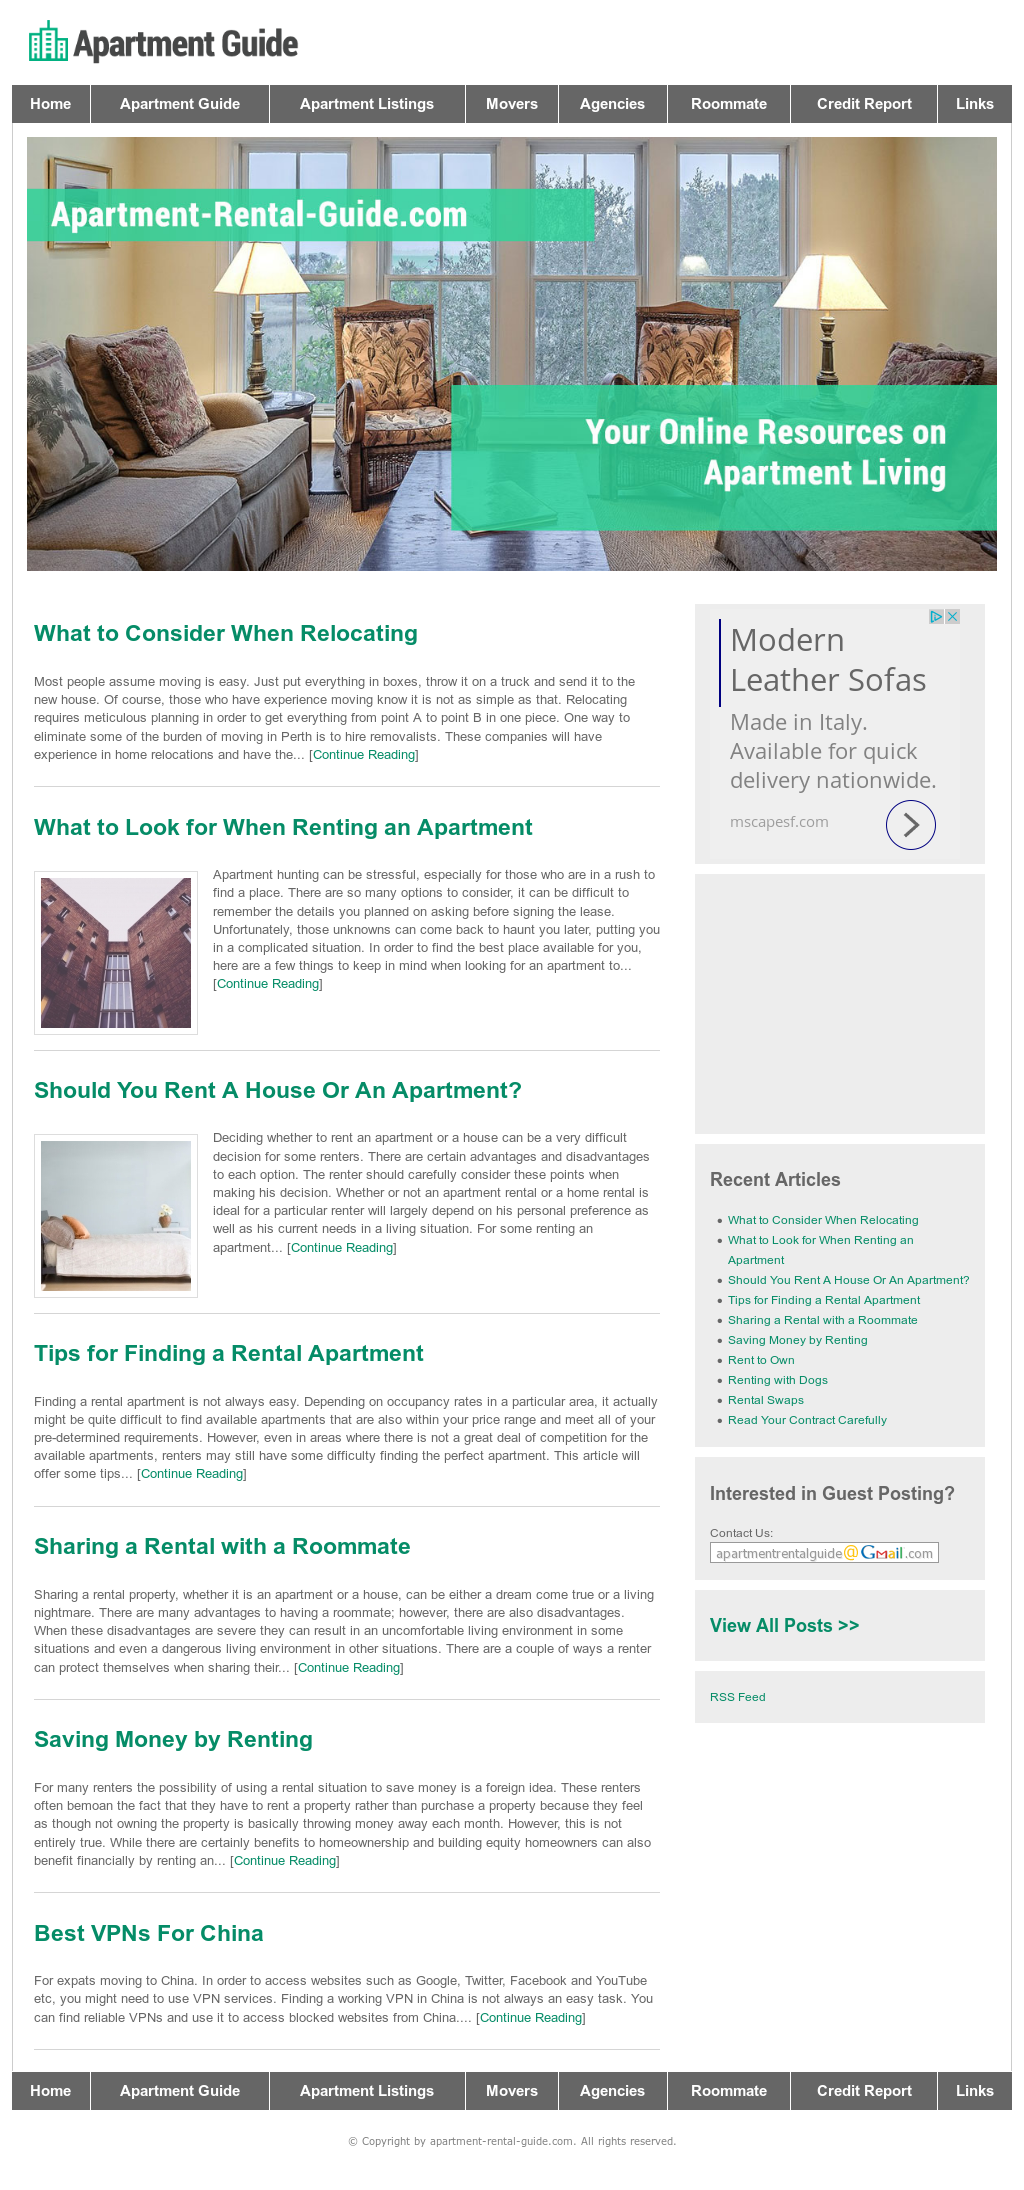 Superb Apartment Rental Guide Competitors, Revenue And Employees   Owler Company  Profile